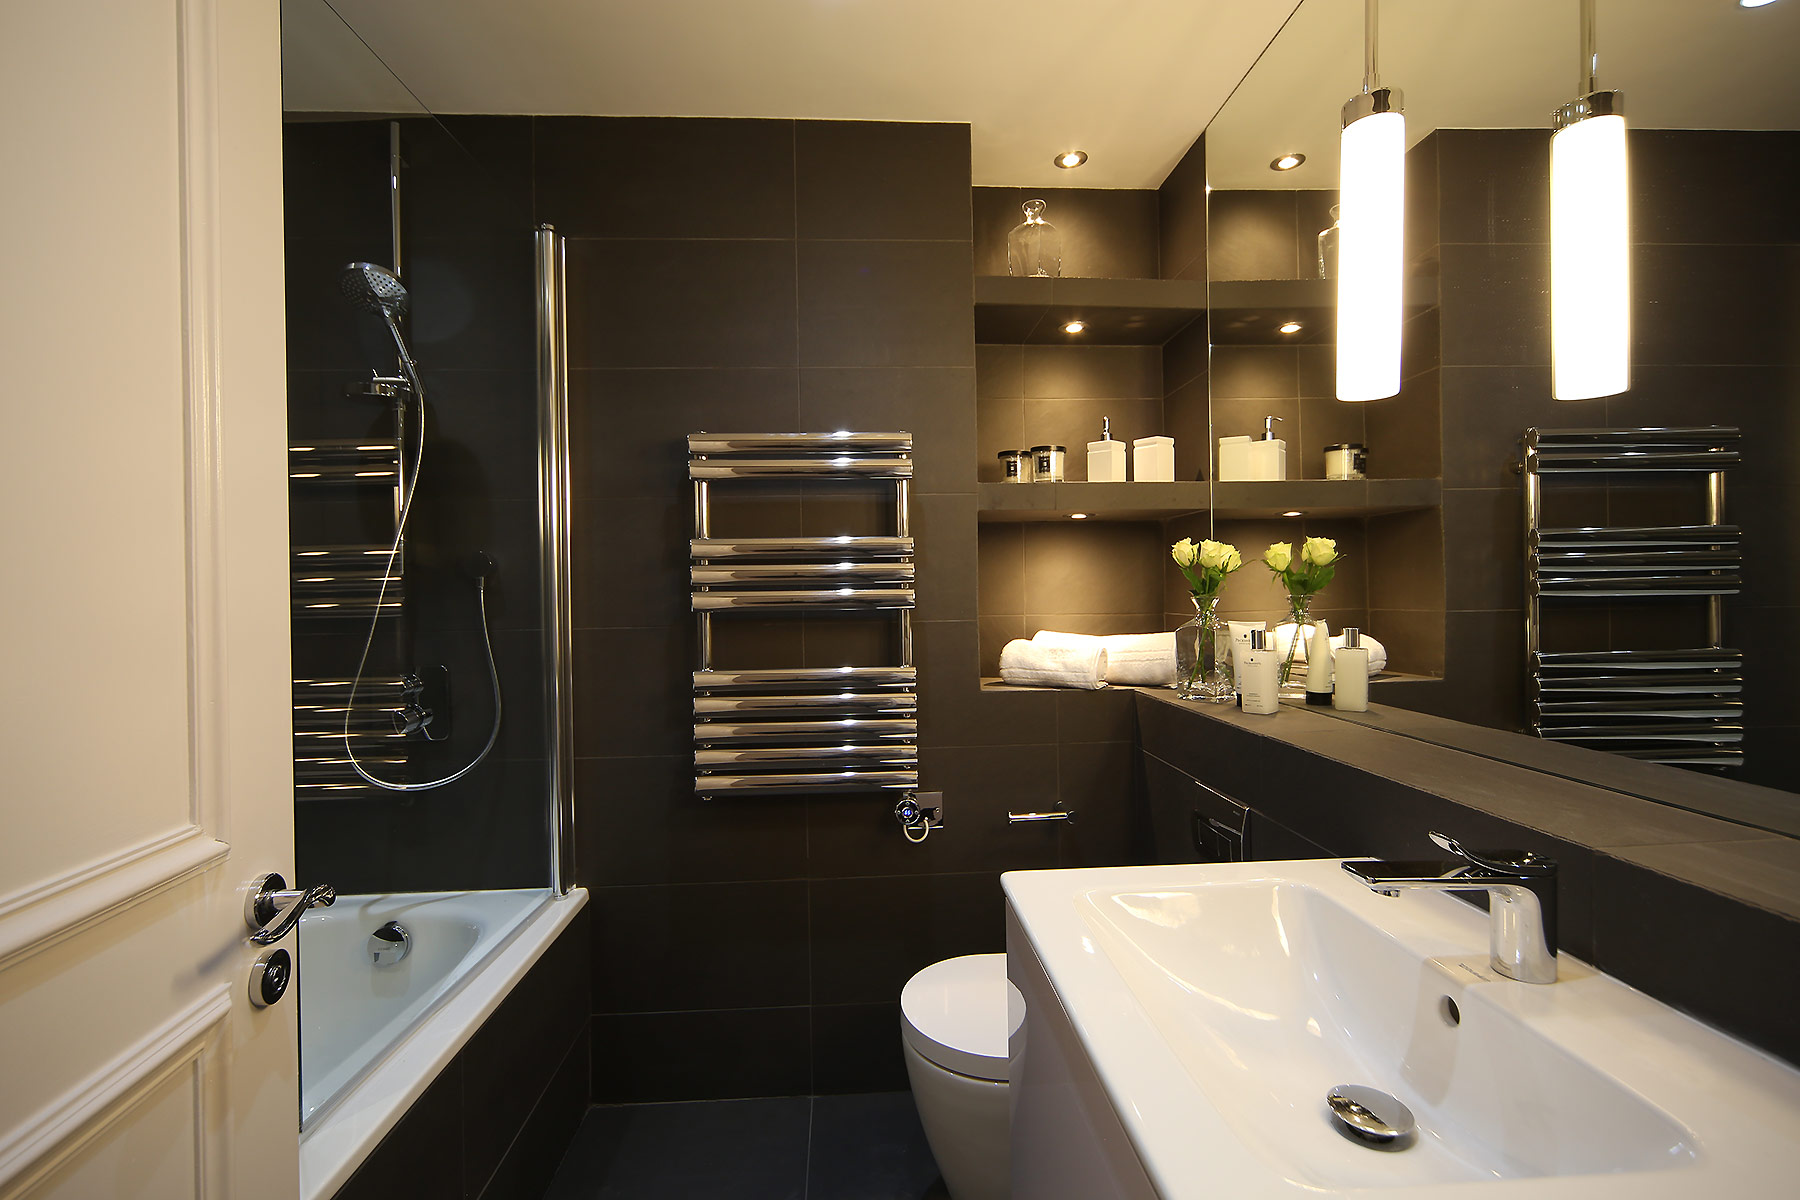 Goucester Gardens Apartment bathroom GHK Architects